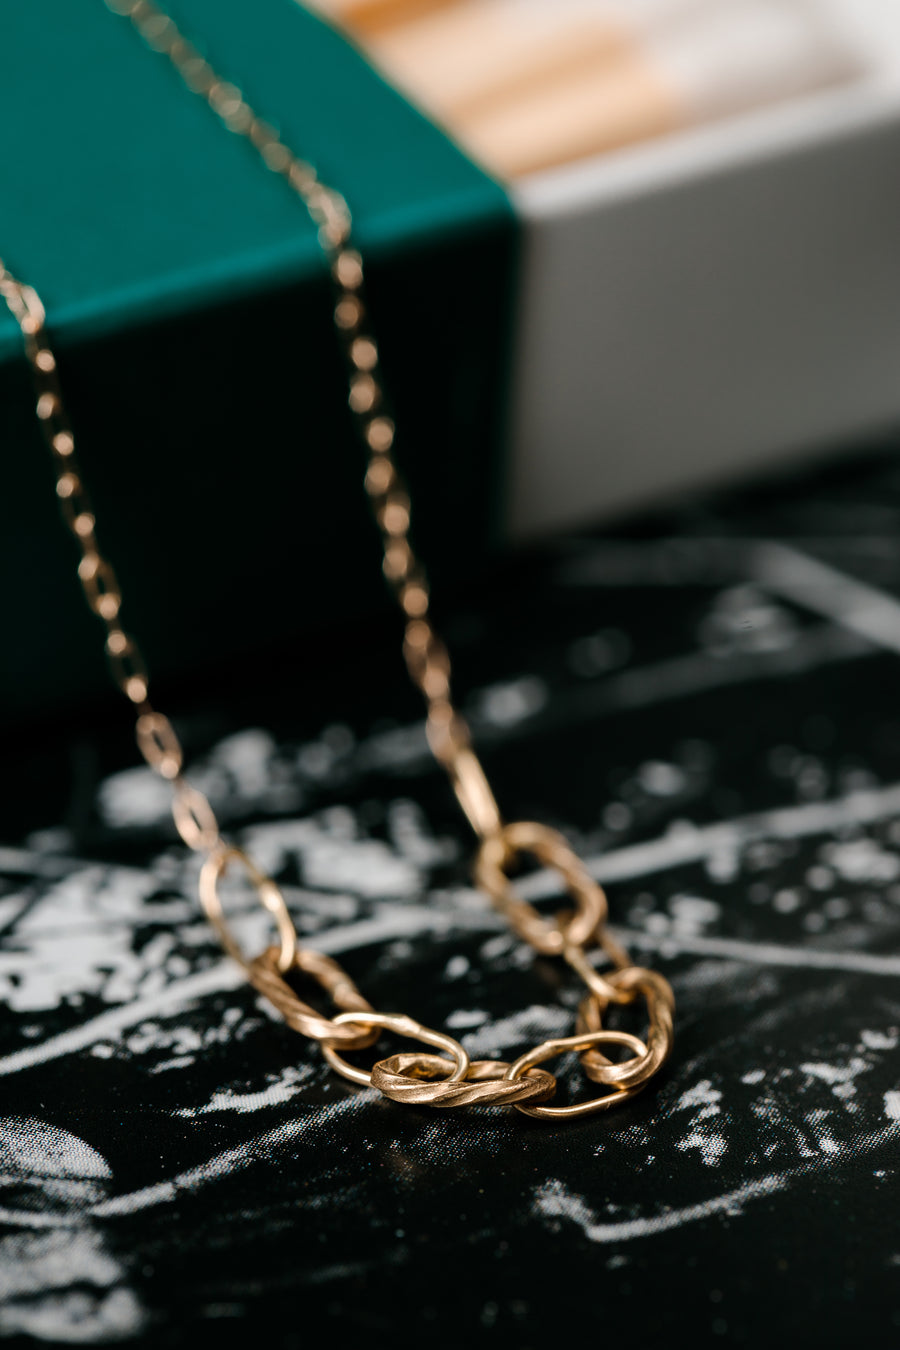 Baby Bowline Segment Necklace In 18k Gold